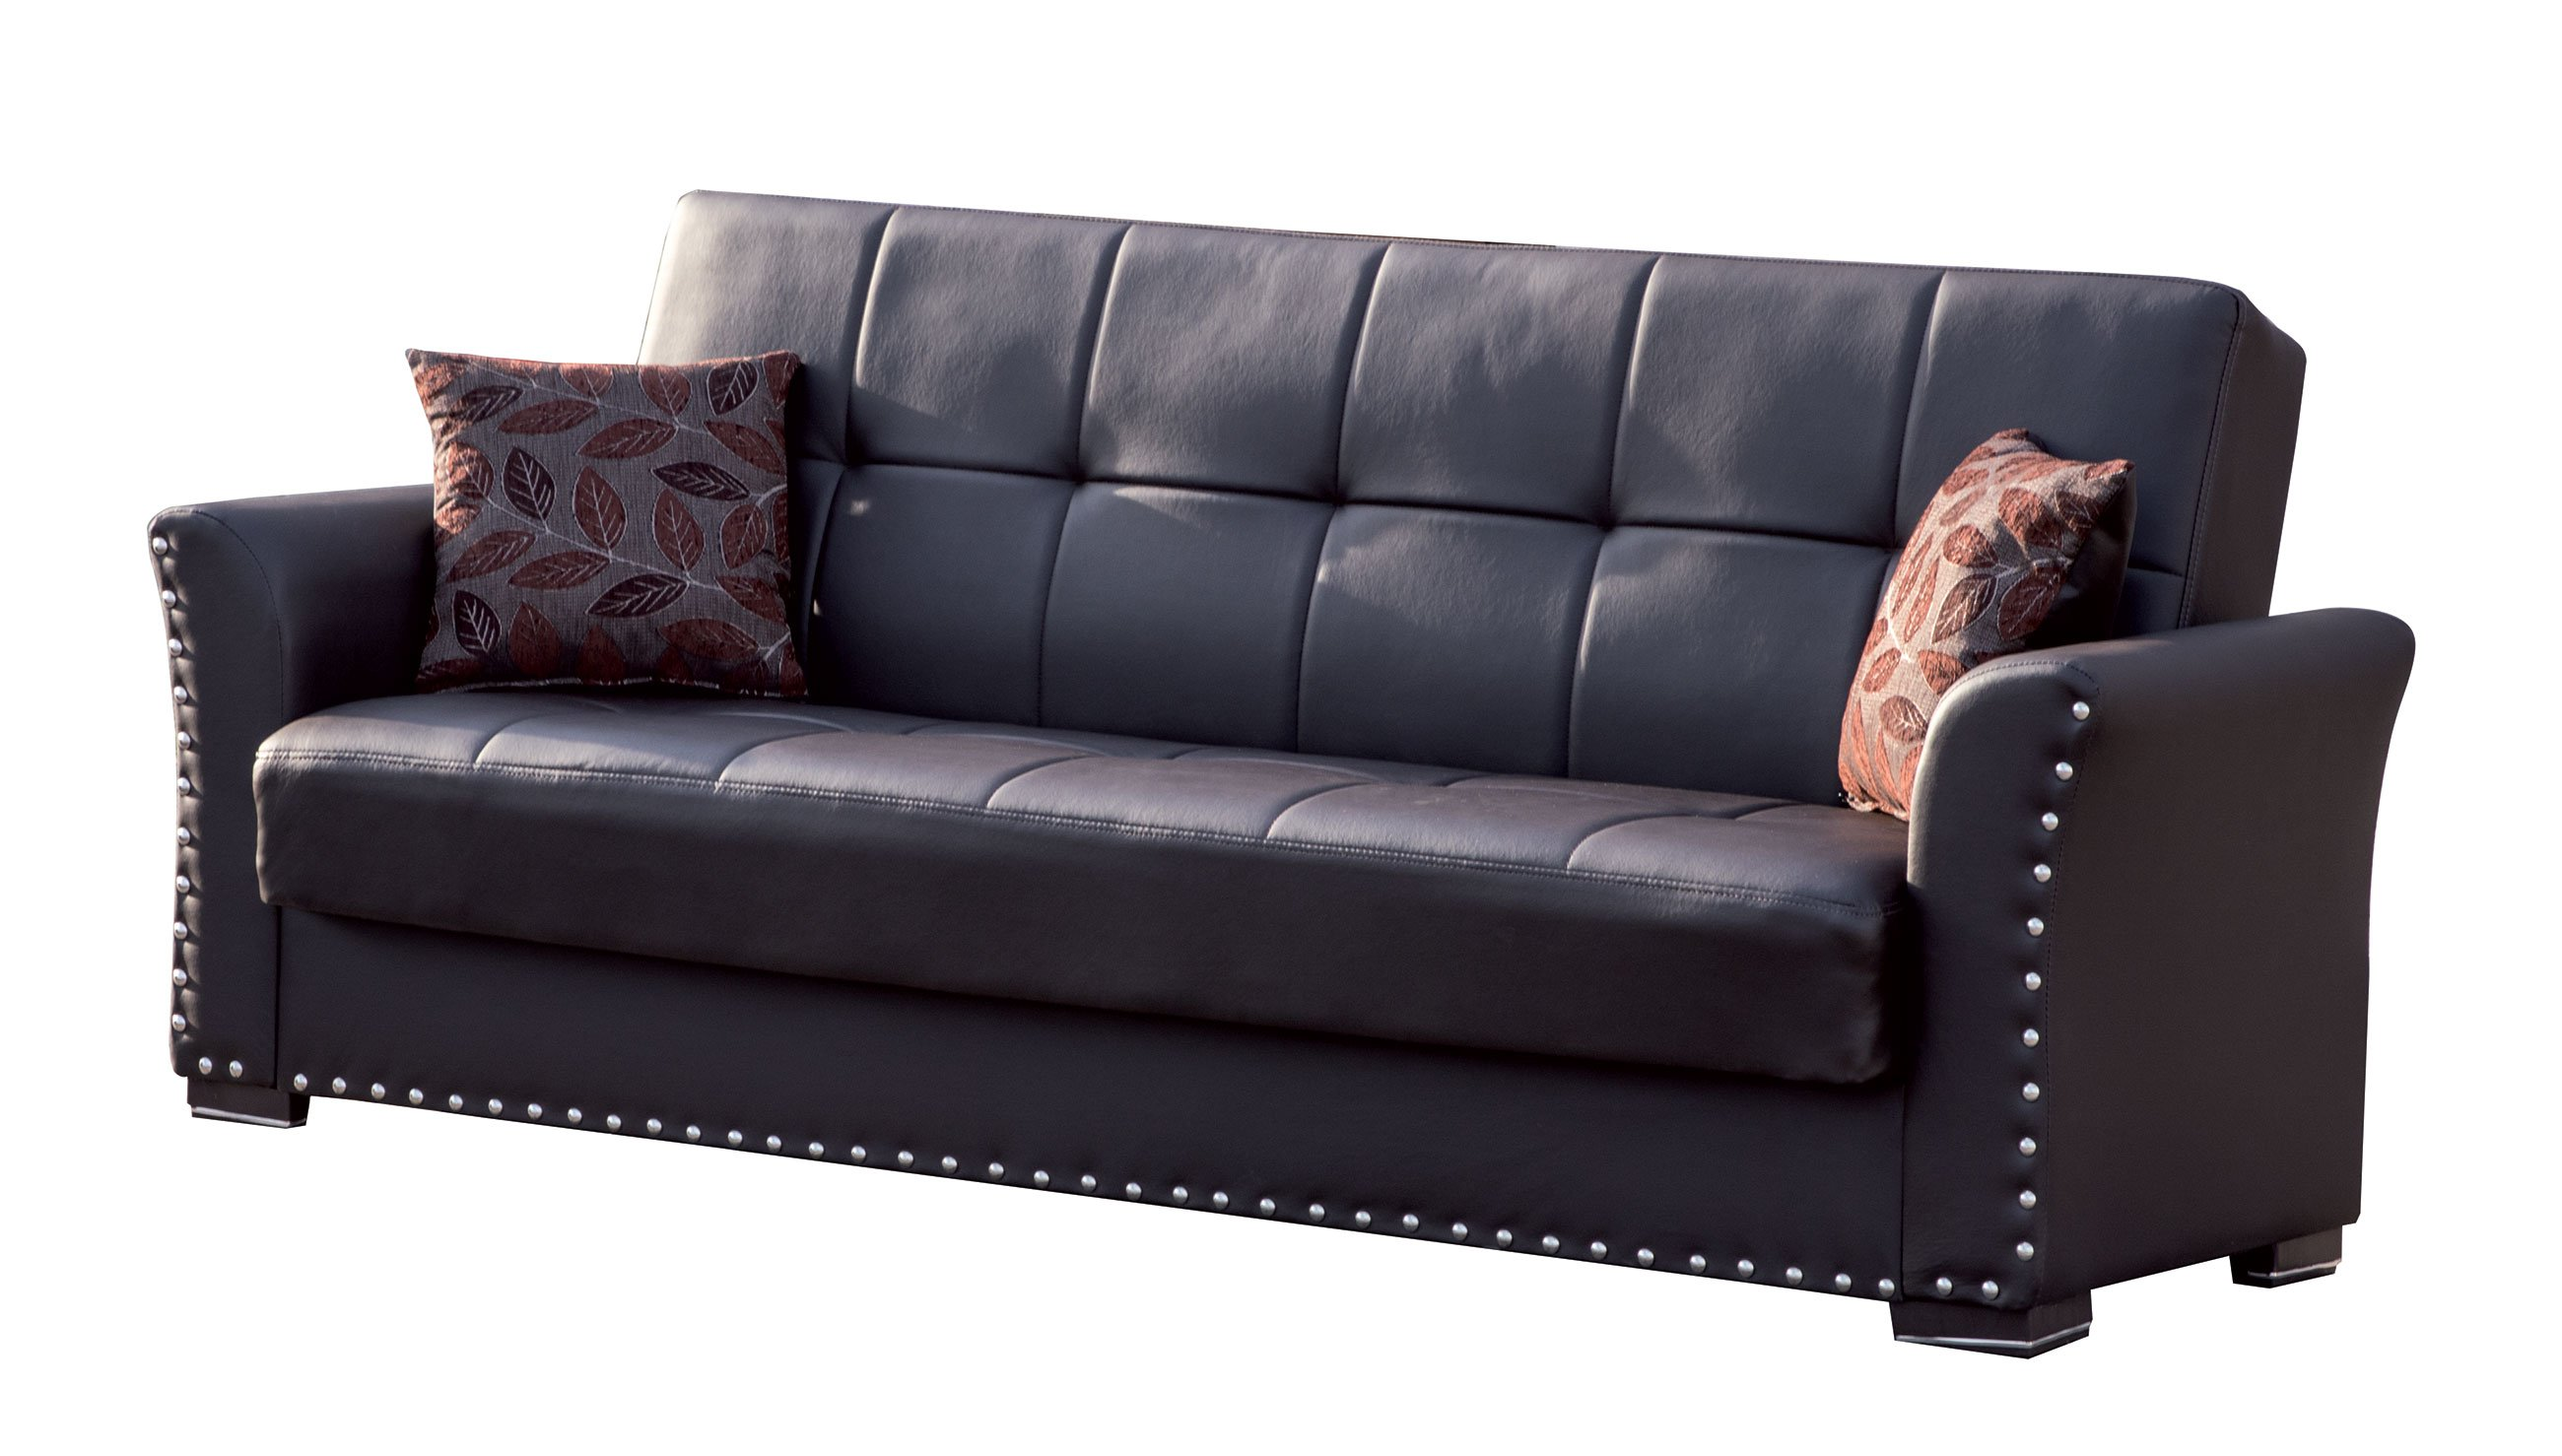 Diva Brown PU Leather Convertible Sofa Bed by Casamode